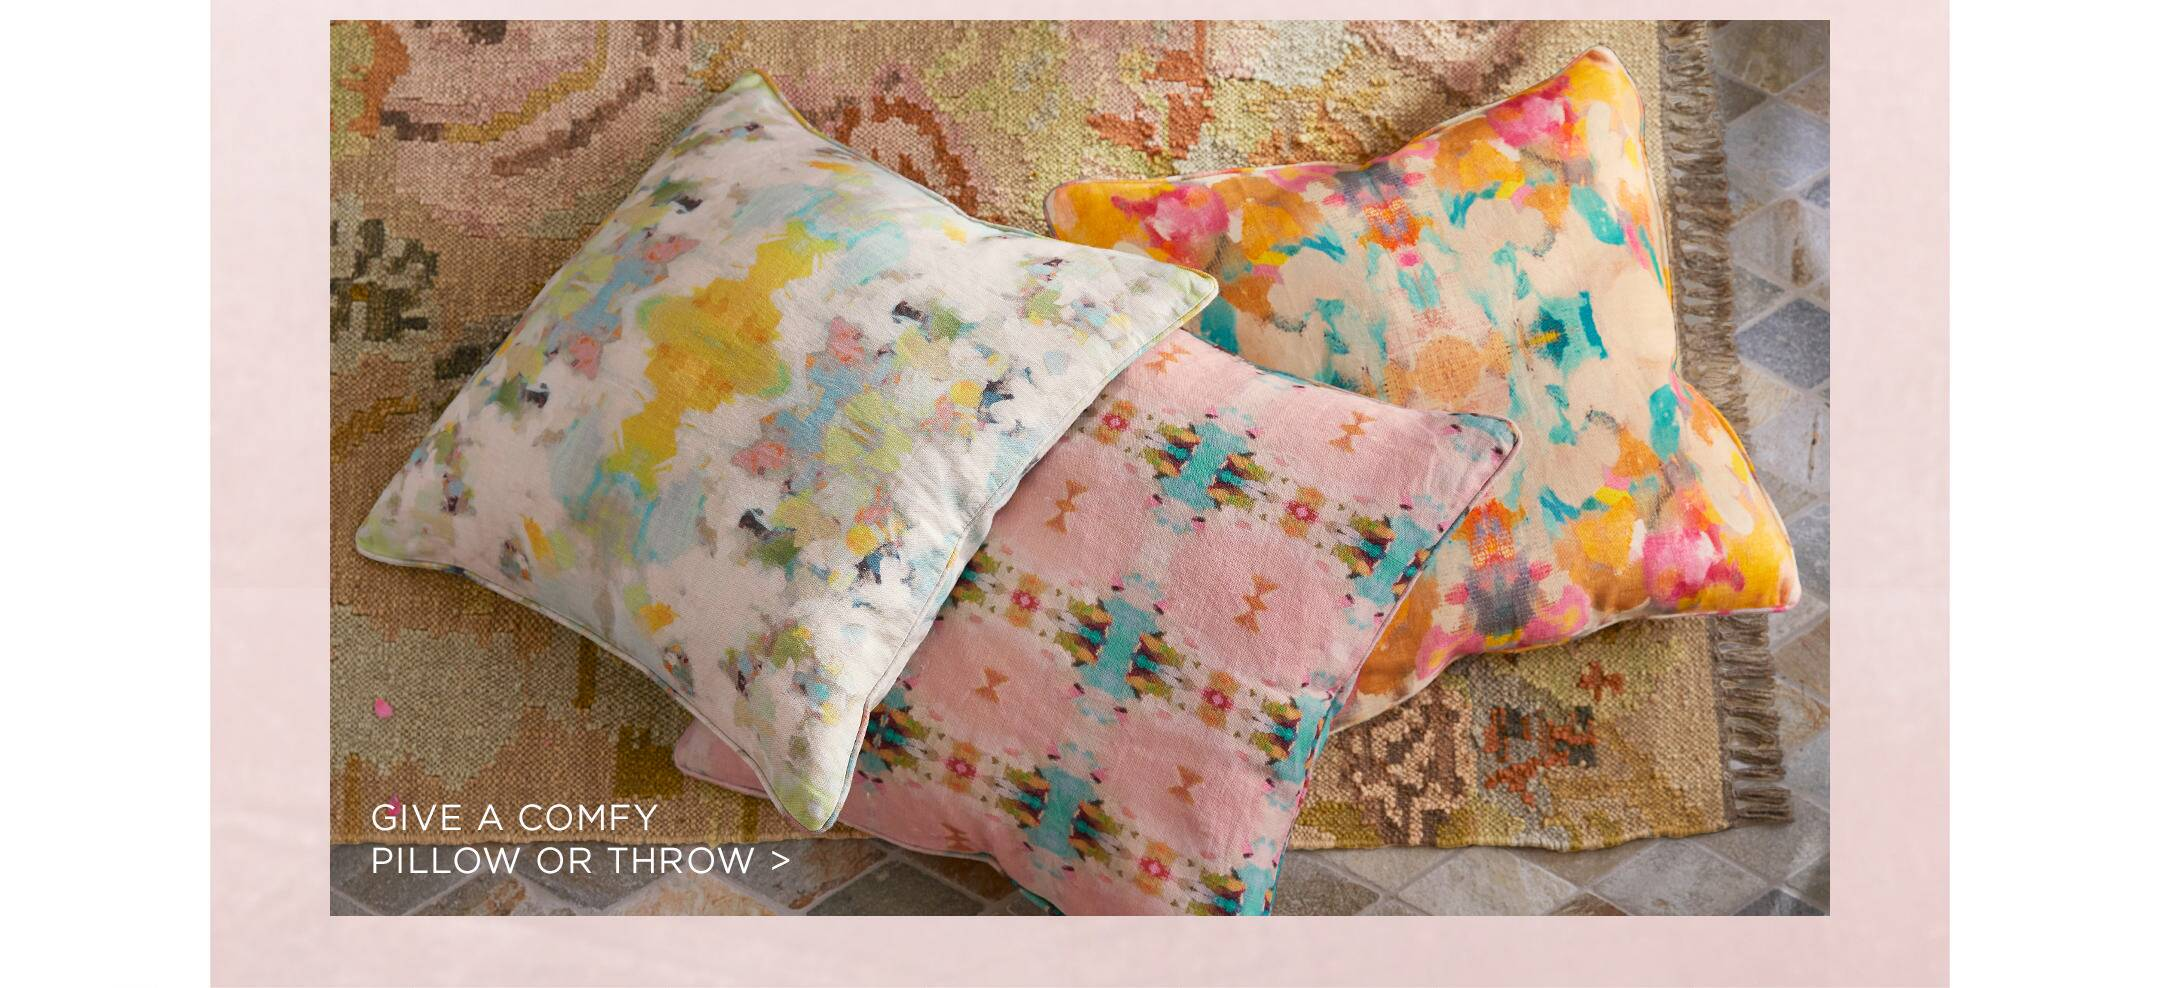 Give a Comfy Pillow or Throw